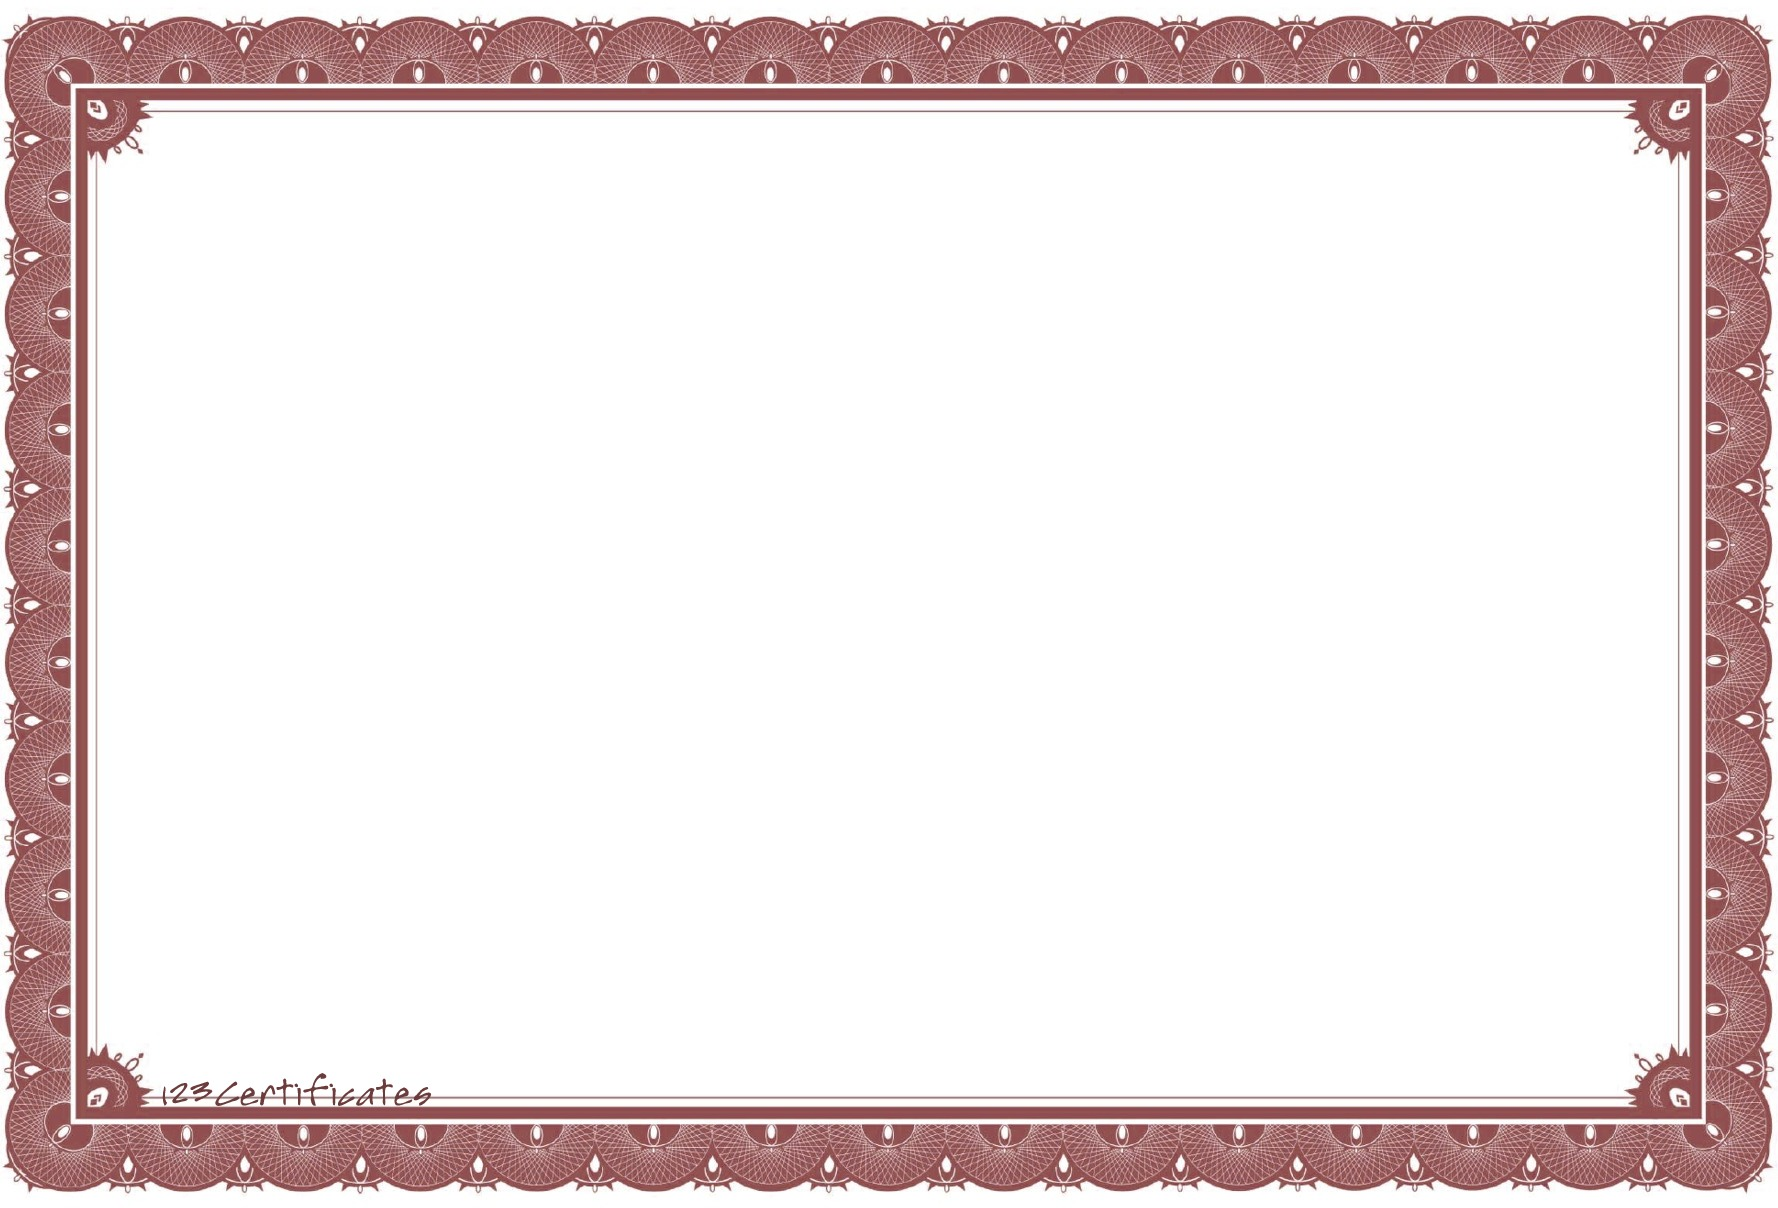 Certificates Borders Templates Free Download